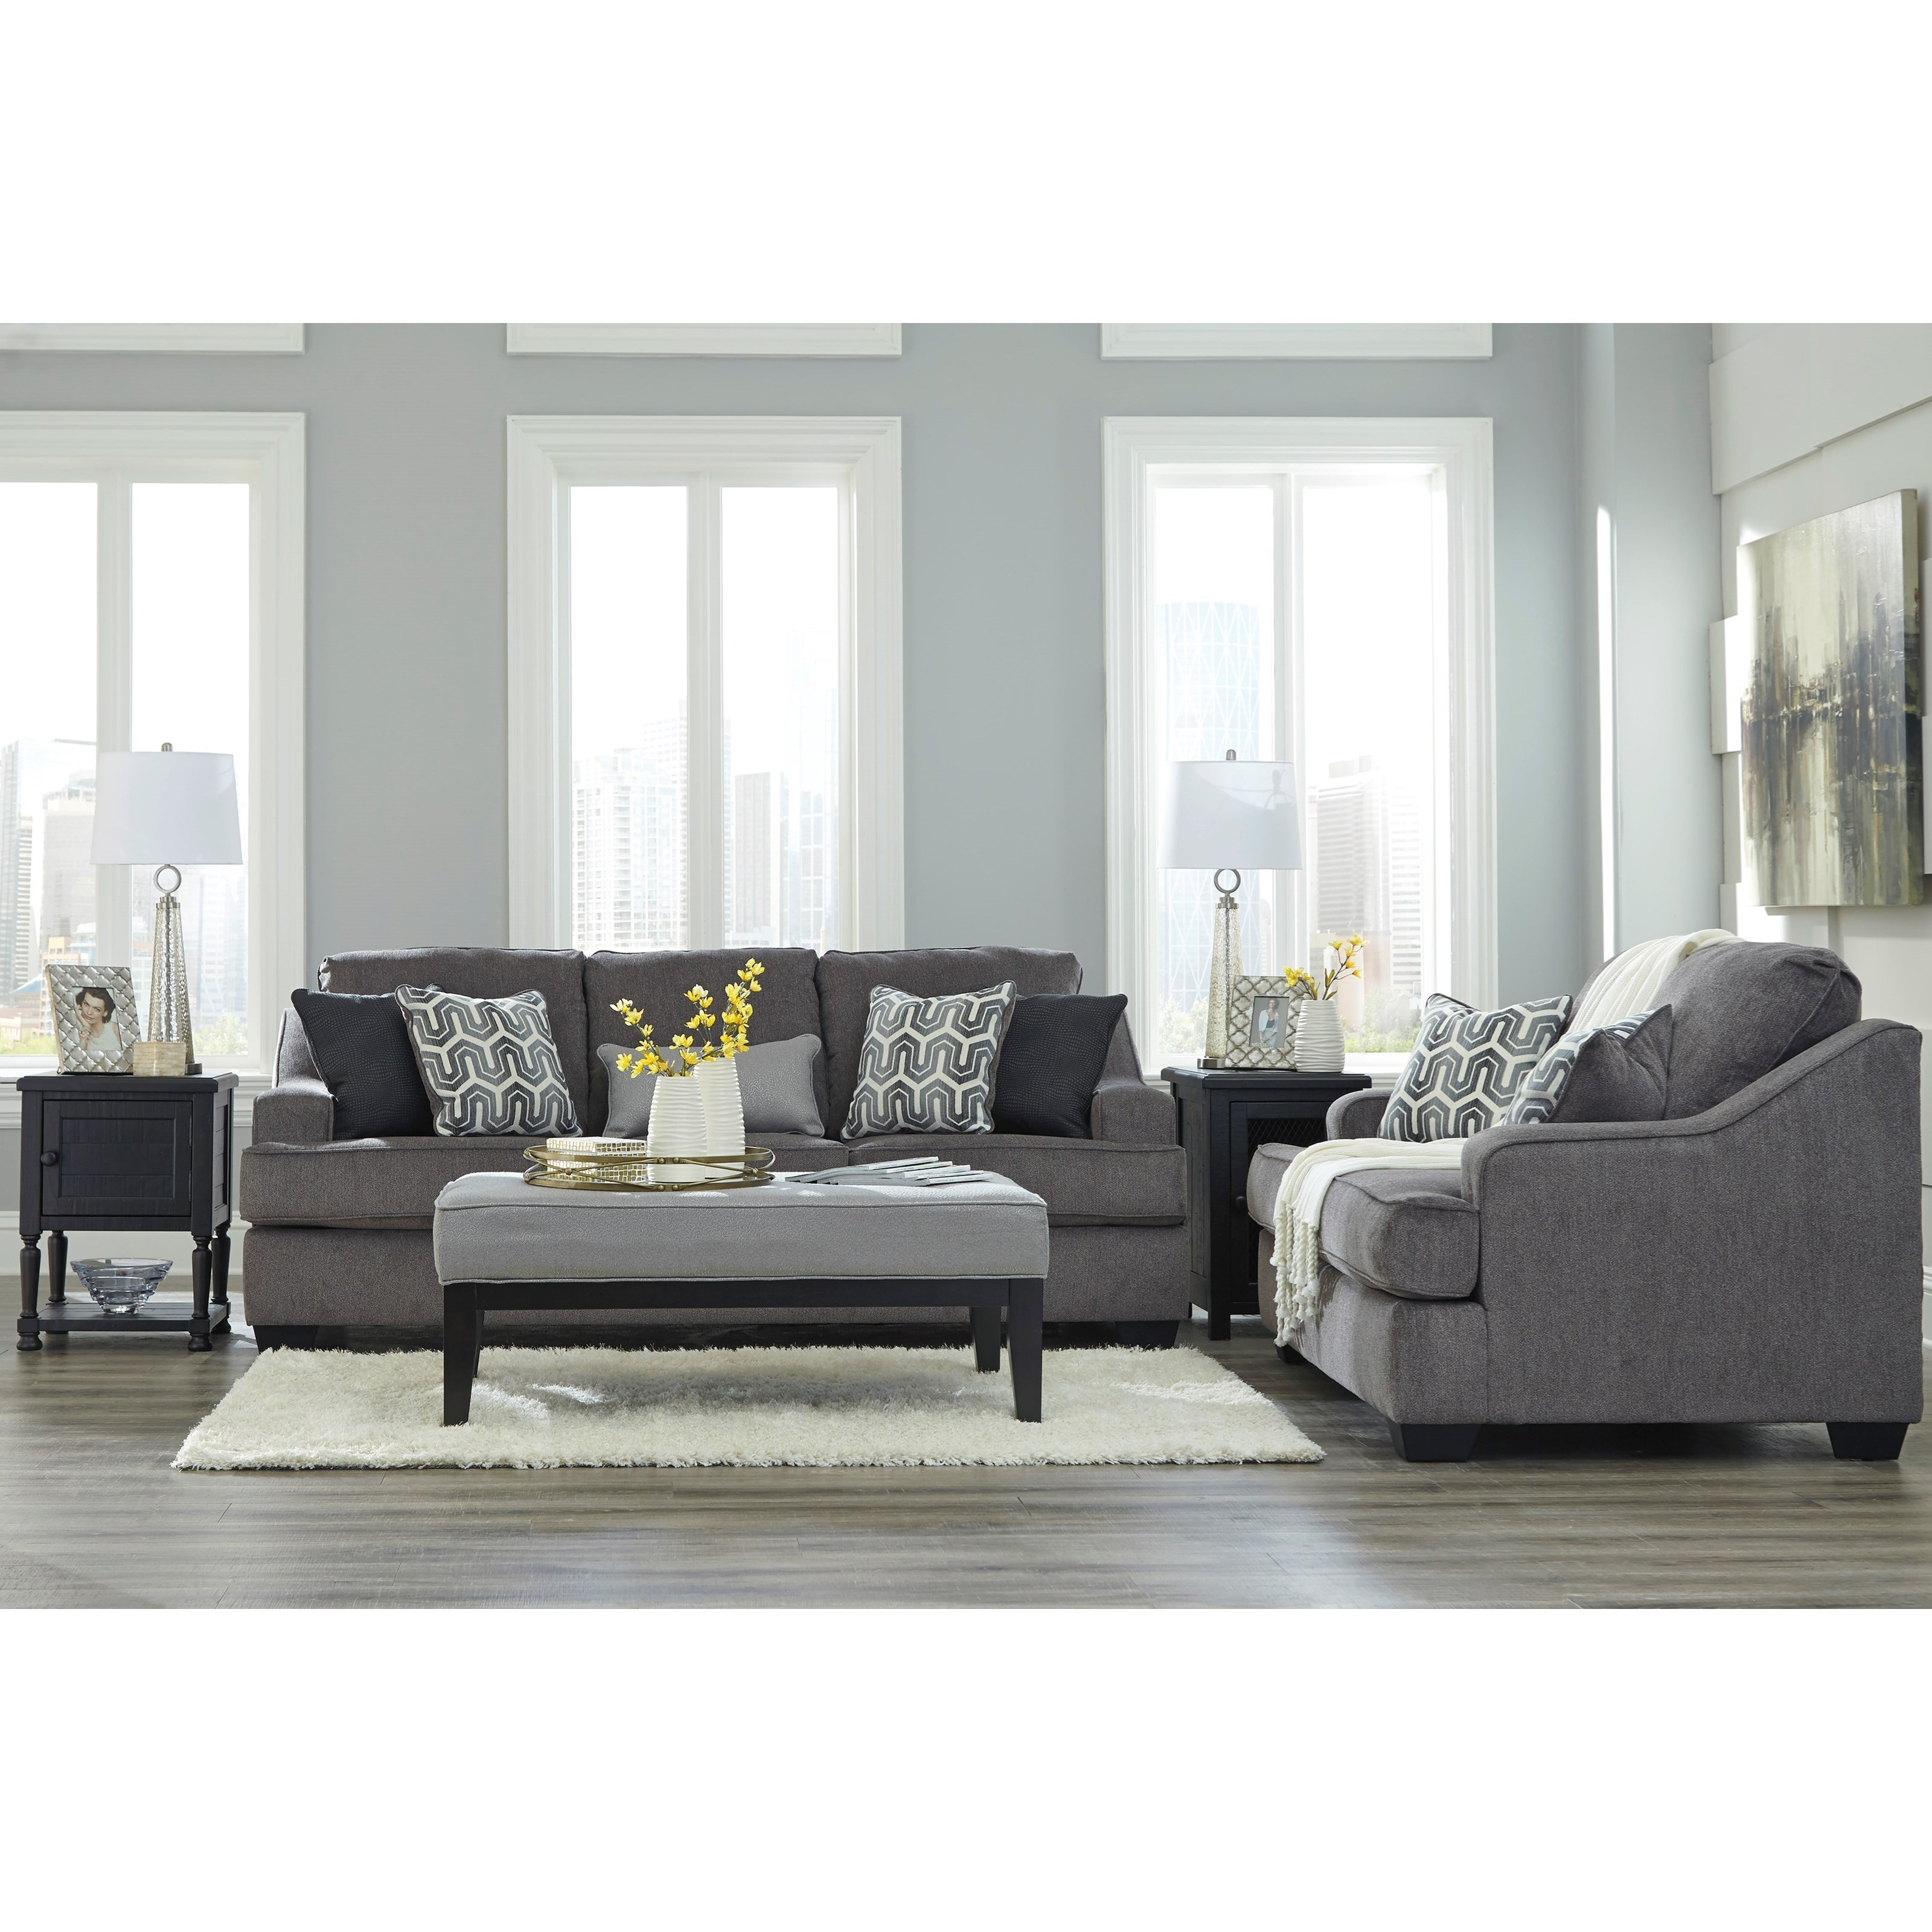 Signature Design by Ashley Gilmer Stationary Living Room Group - Item Number: 65603 Living Room Group 2